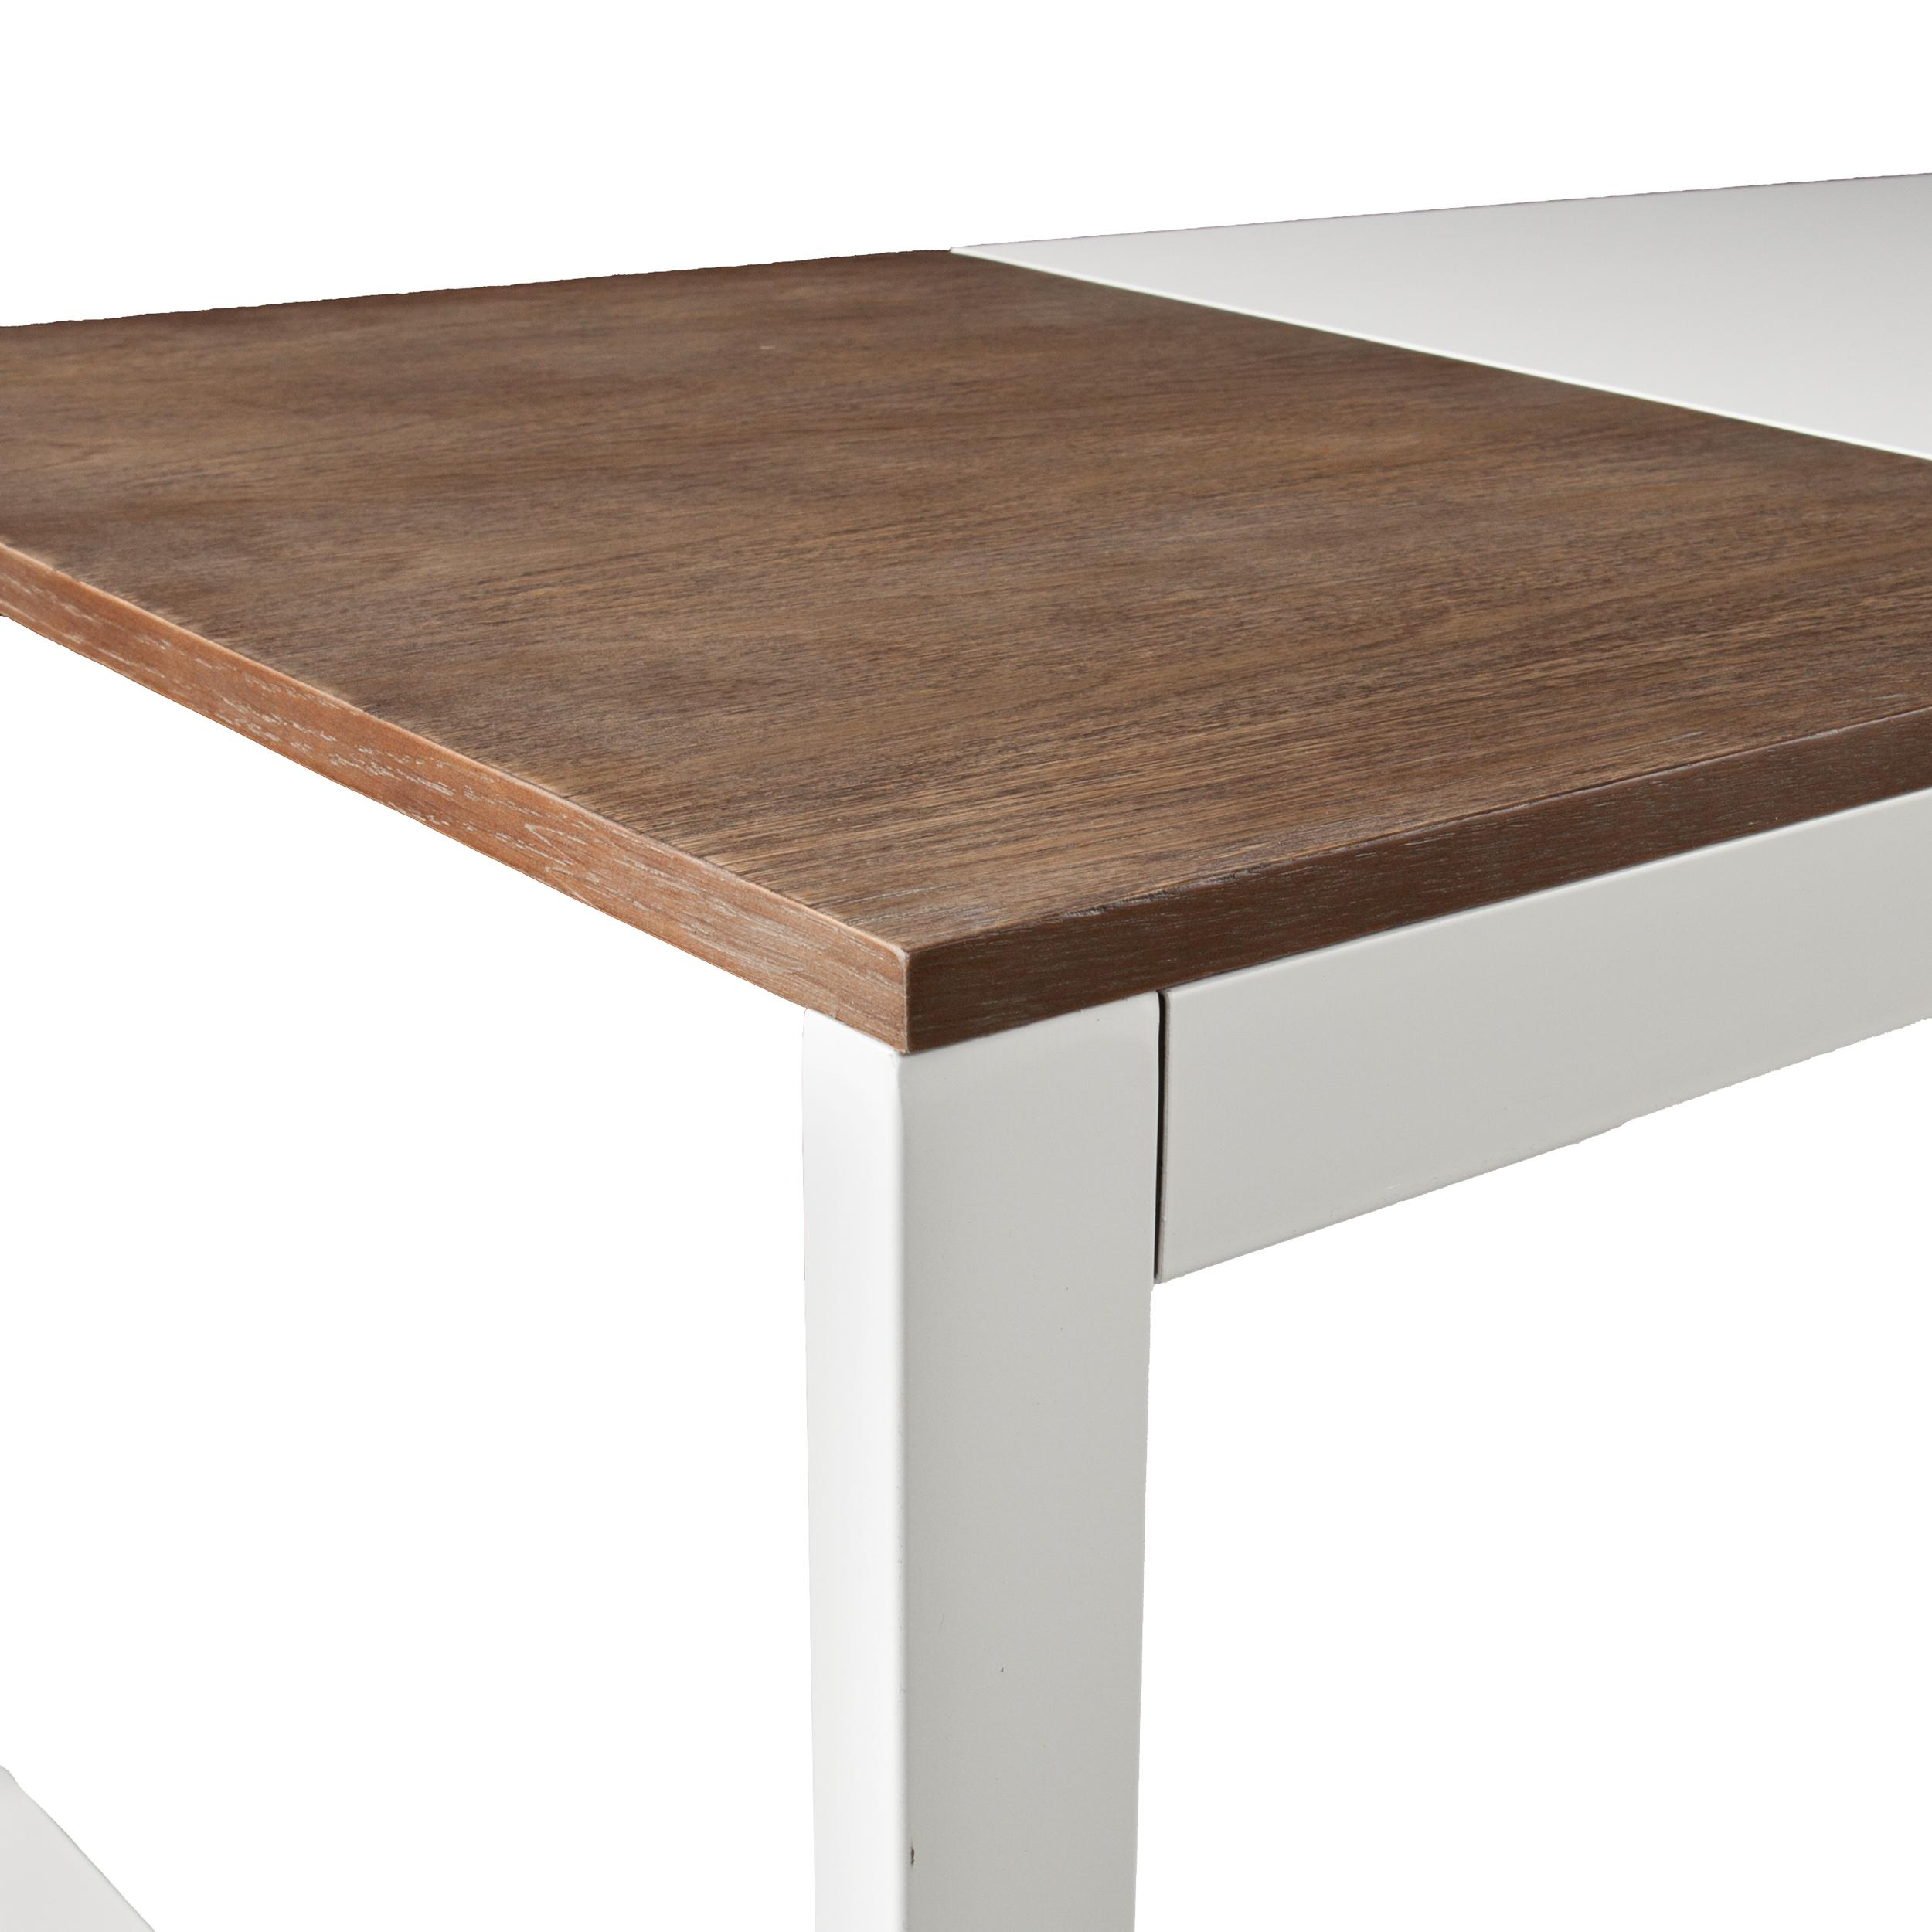 Holly martin lydock cocktail coffee table for Table 00 martin szekely